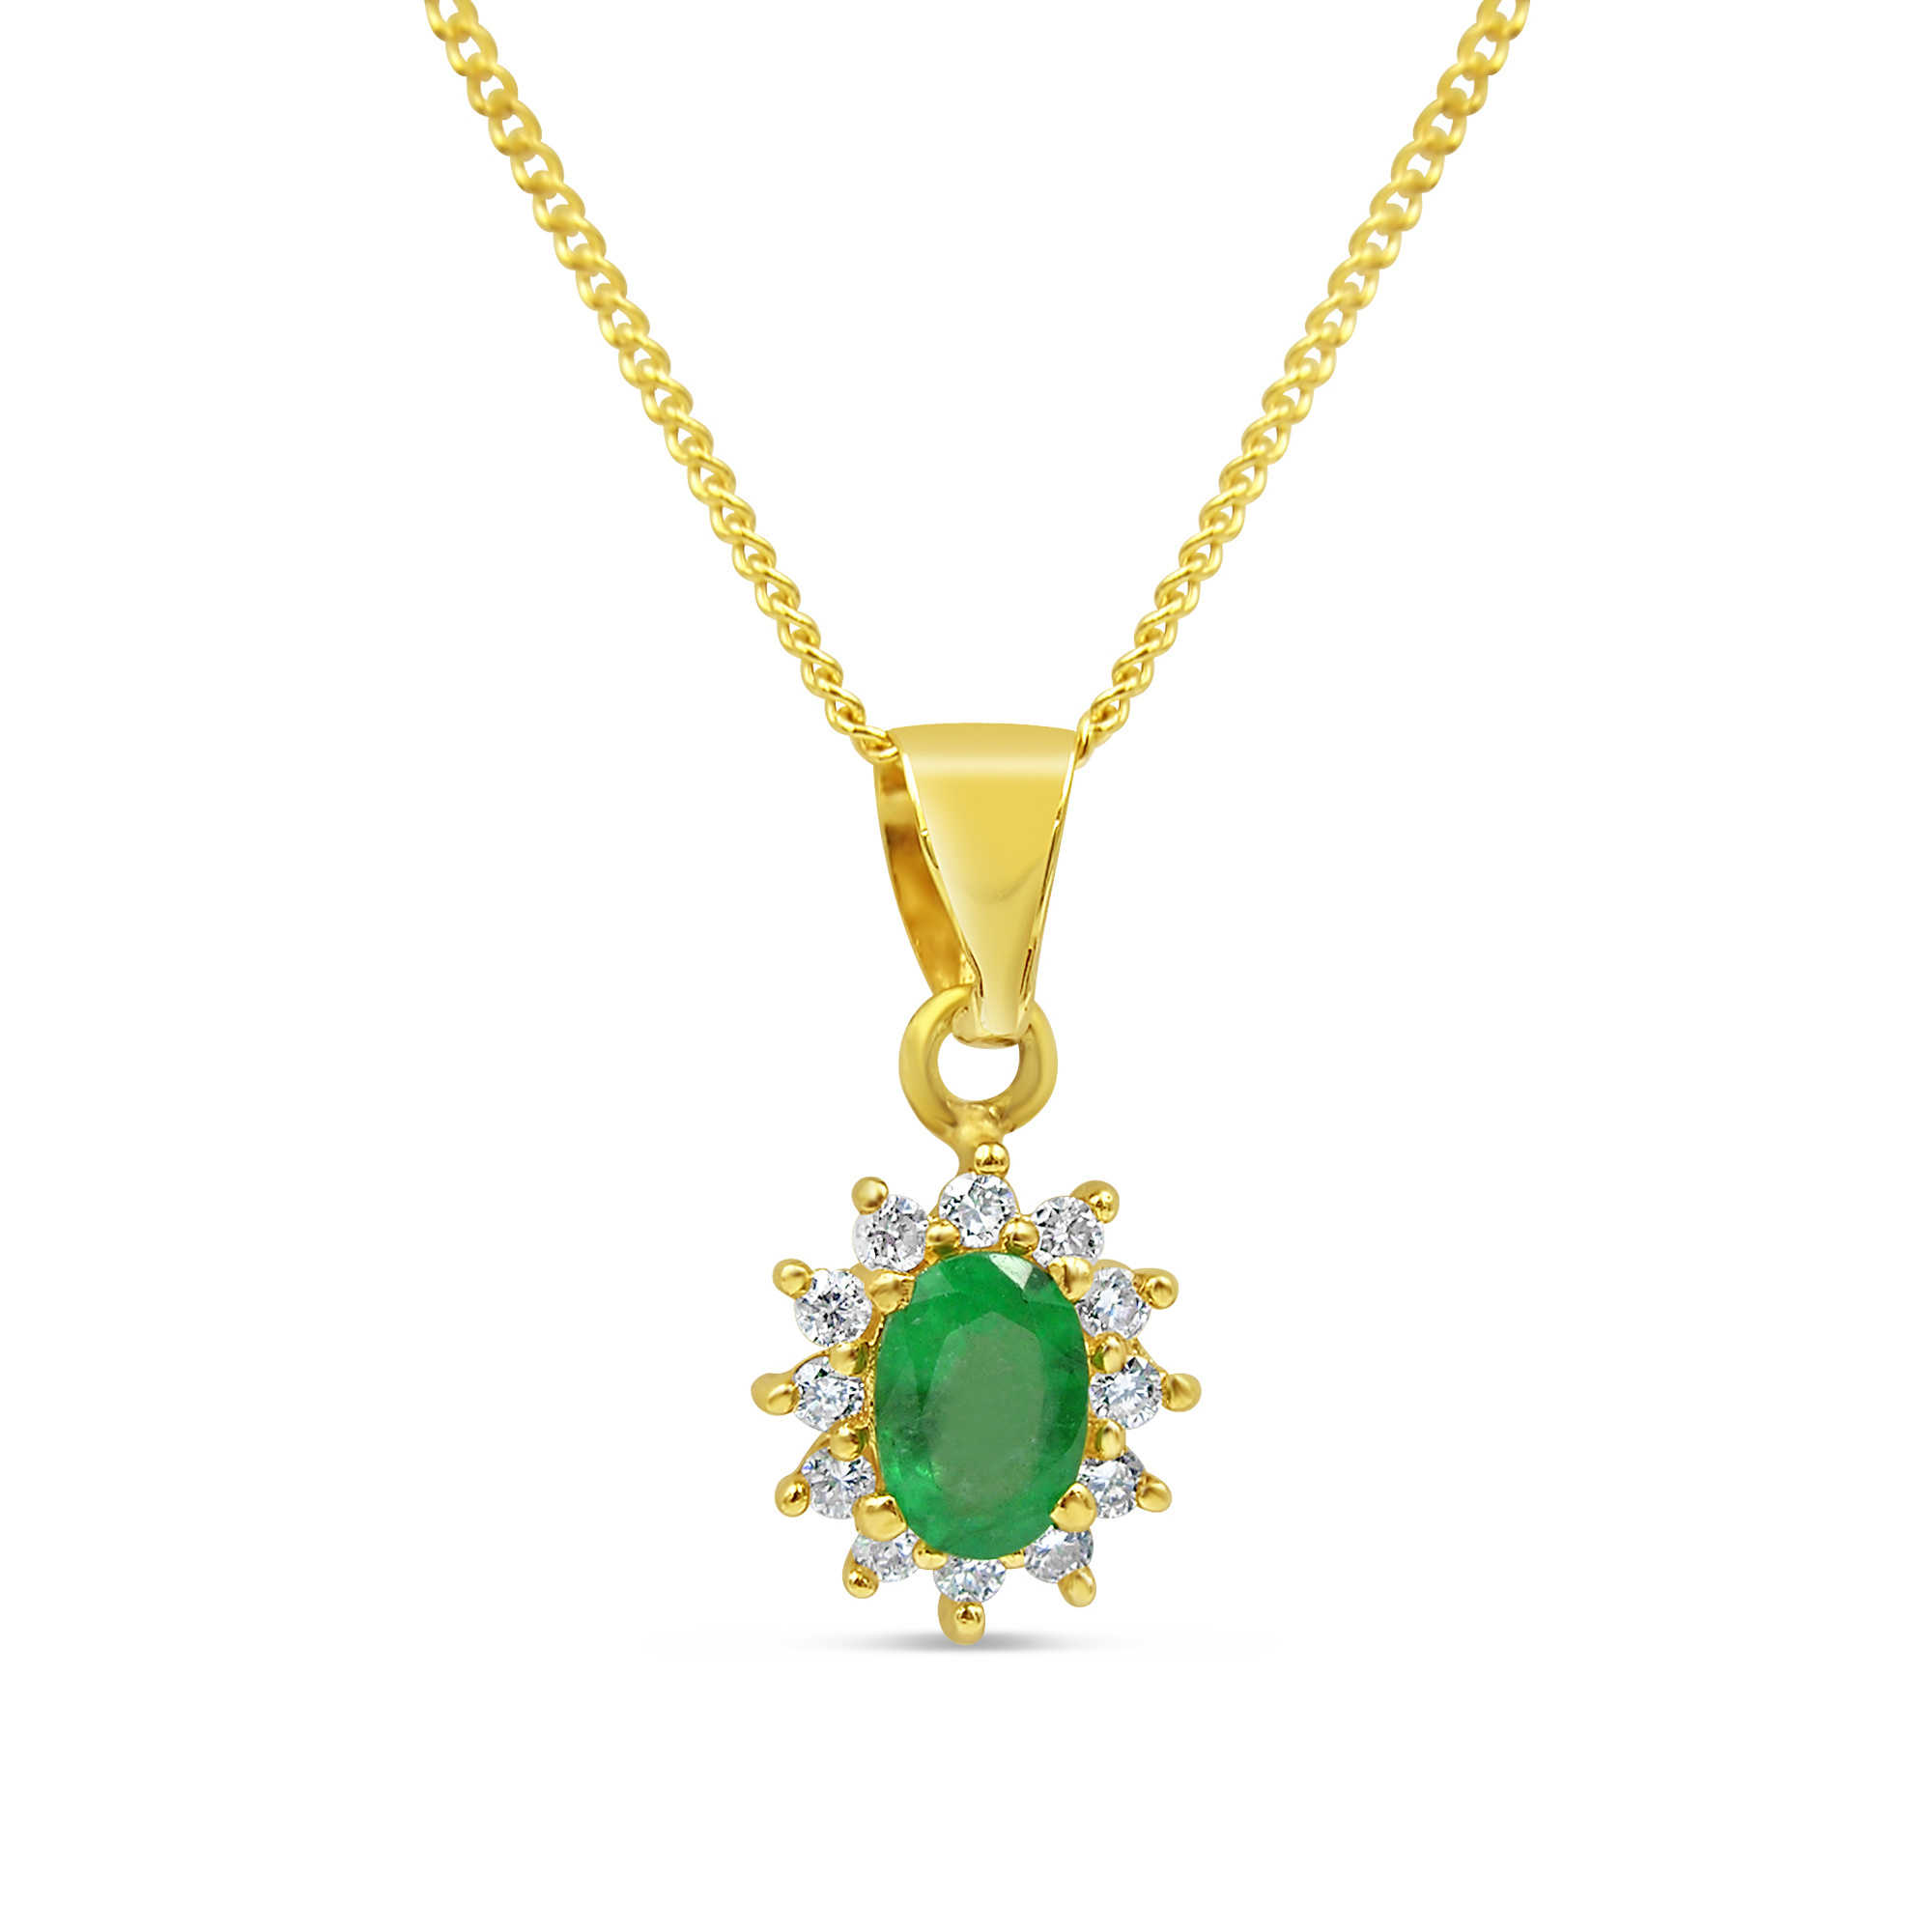 18kt yellow gold pendant with 0.50 ct emerald & 0.20 ct diamonds